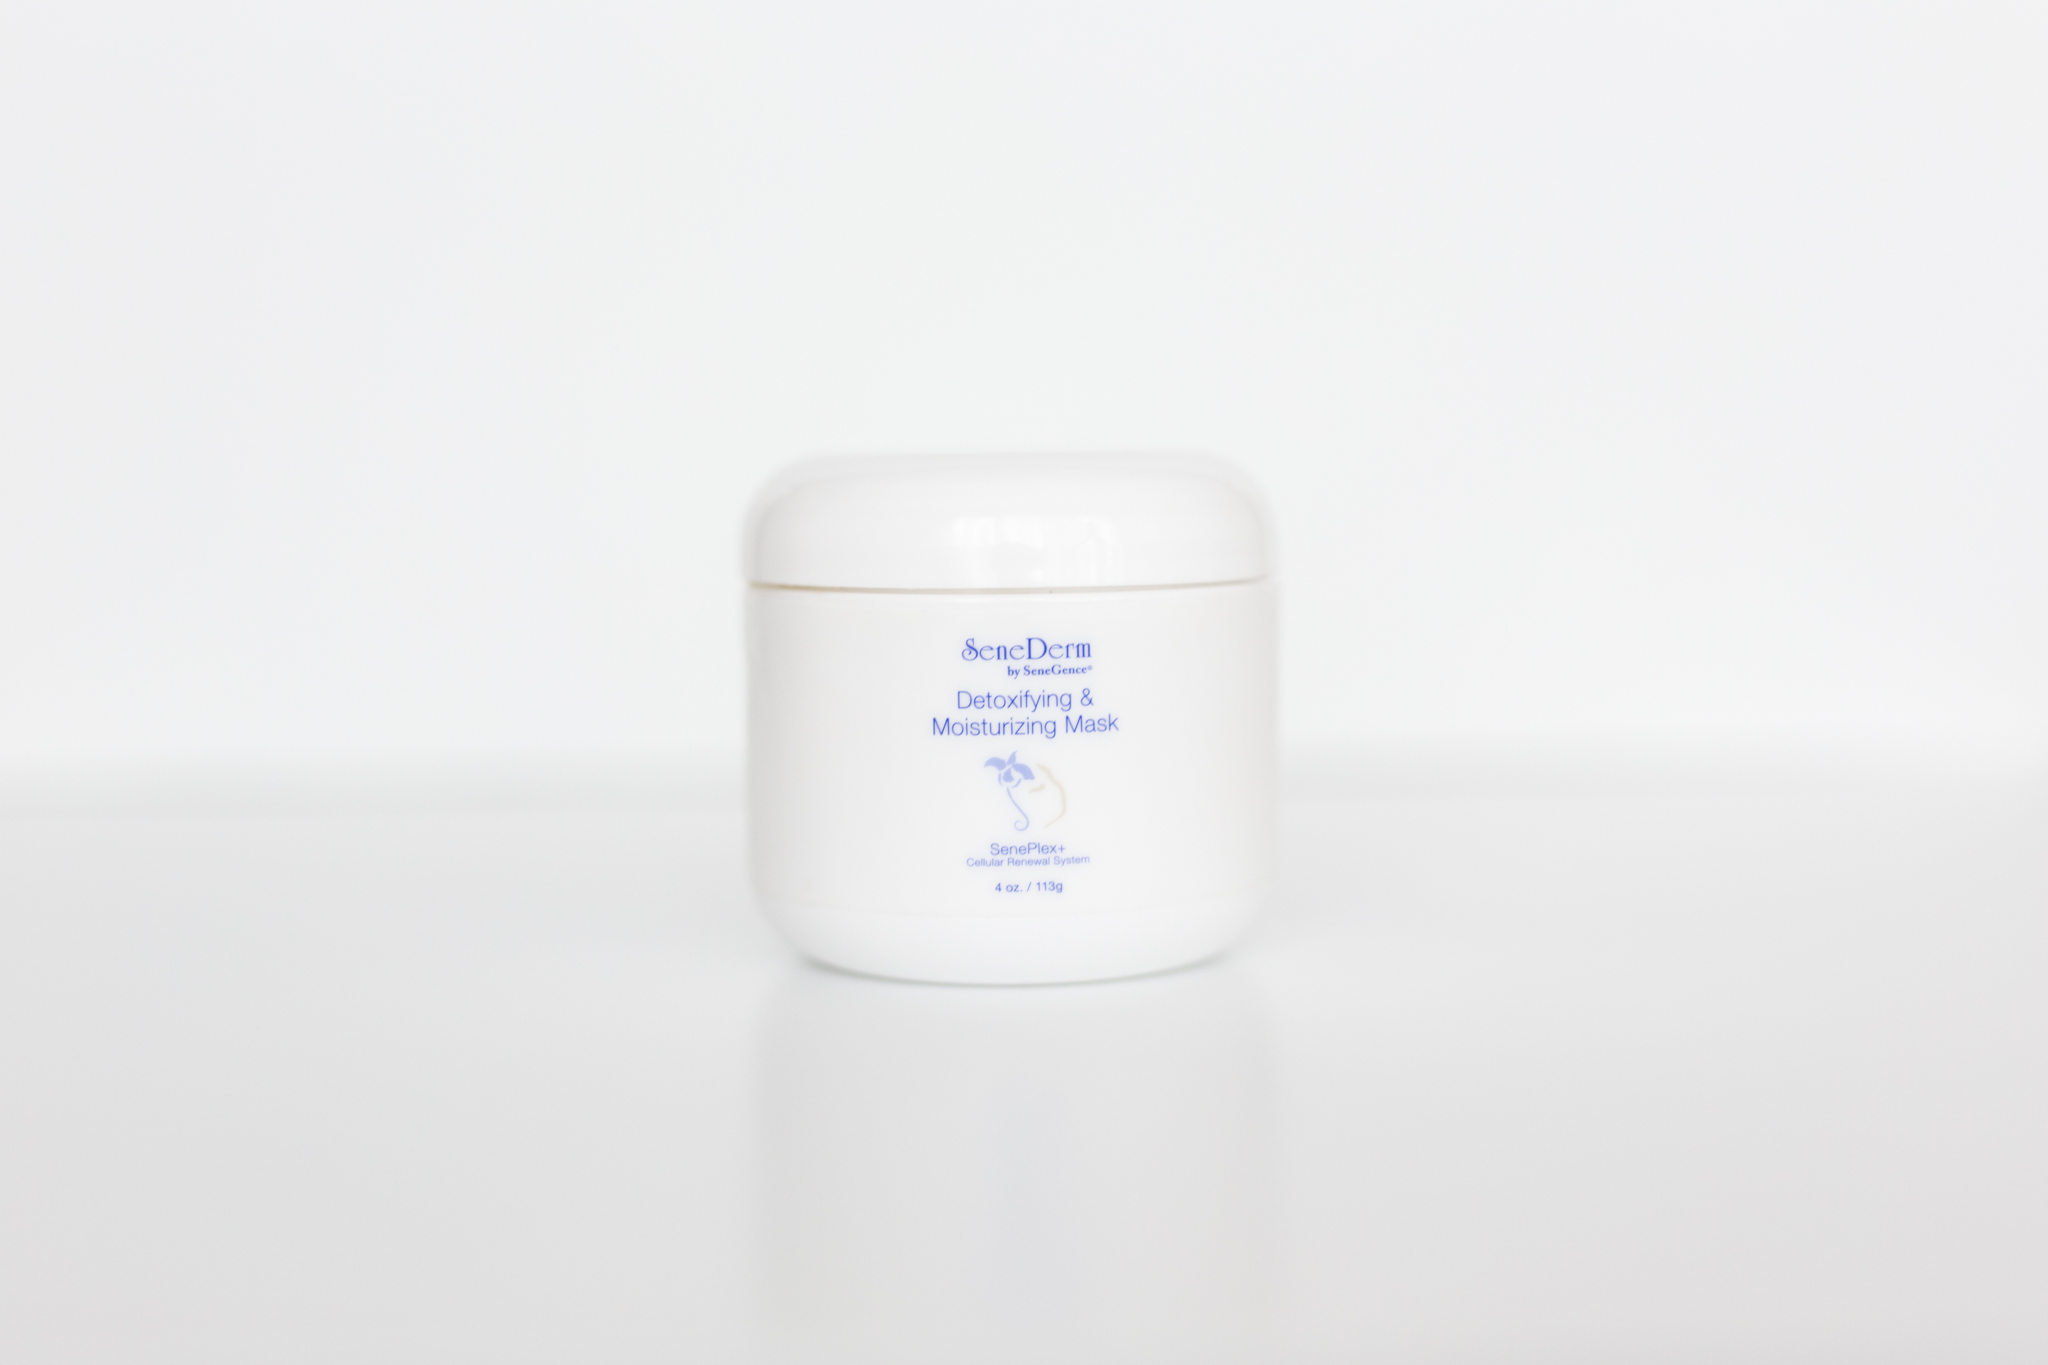 Detoxifying & moisturizing mask - with SenePlex